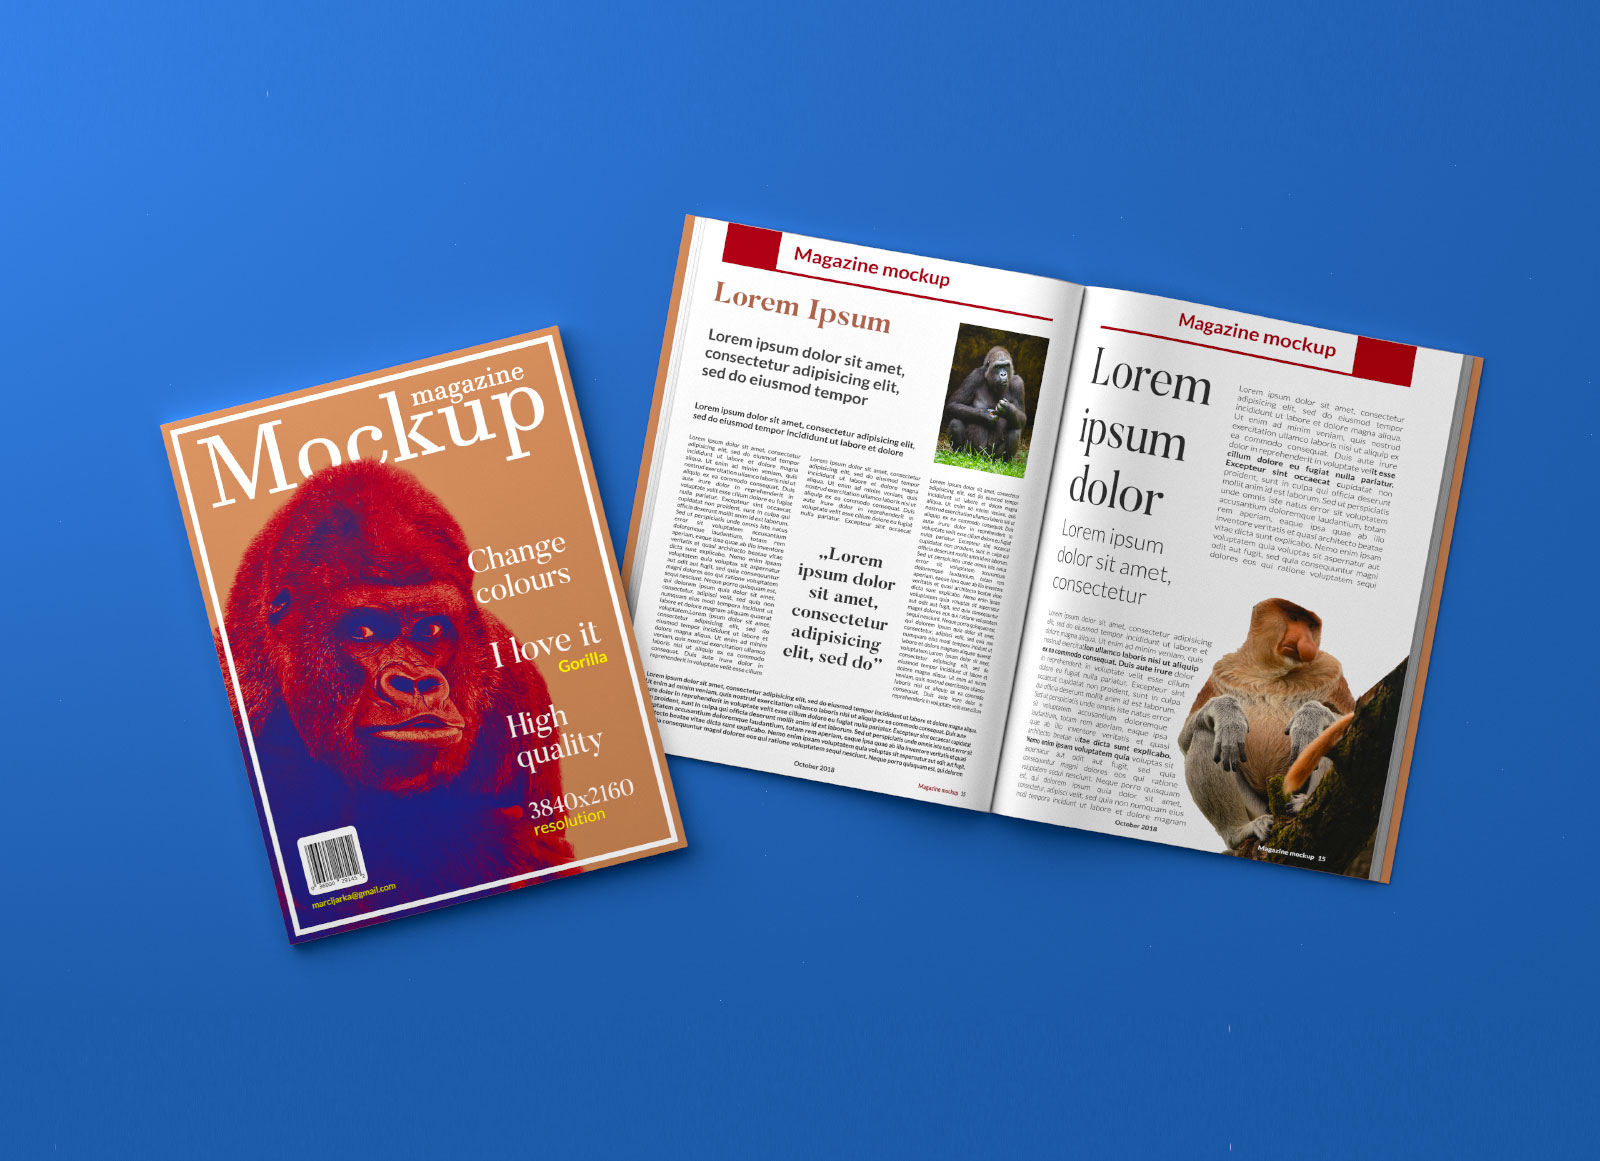 Free-High-Quality-Magazine-Mockup-PSD-Set-3